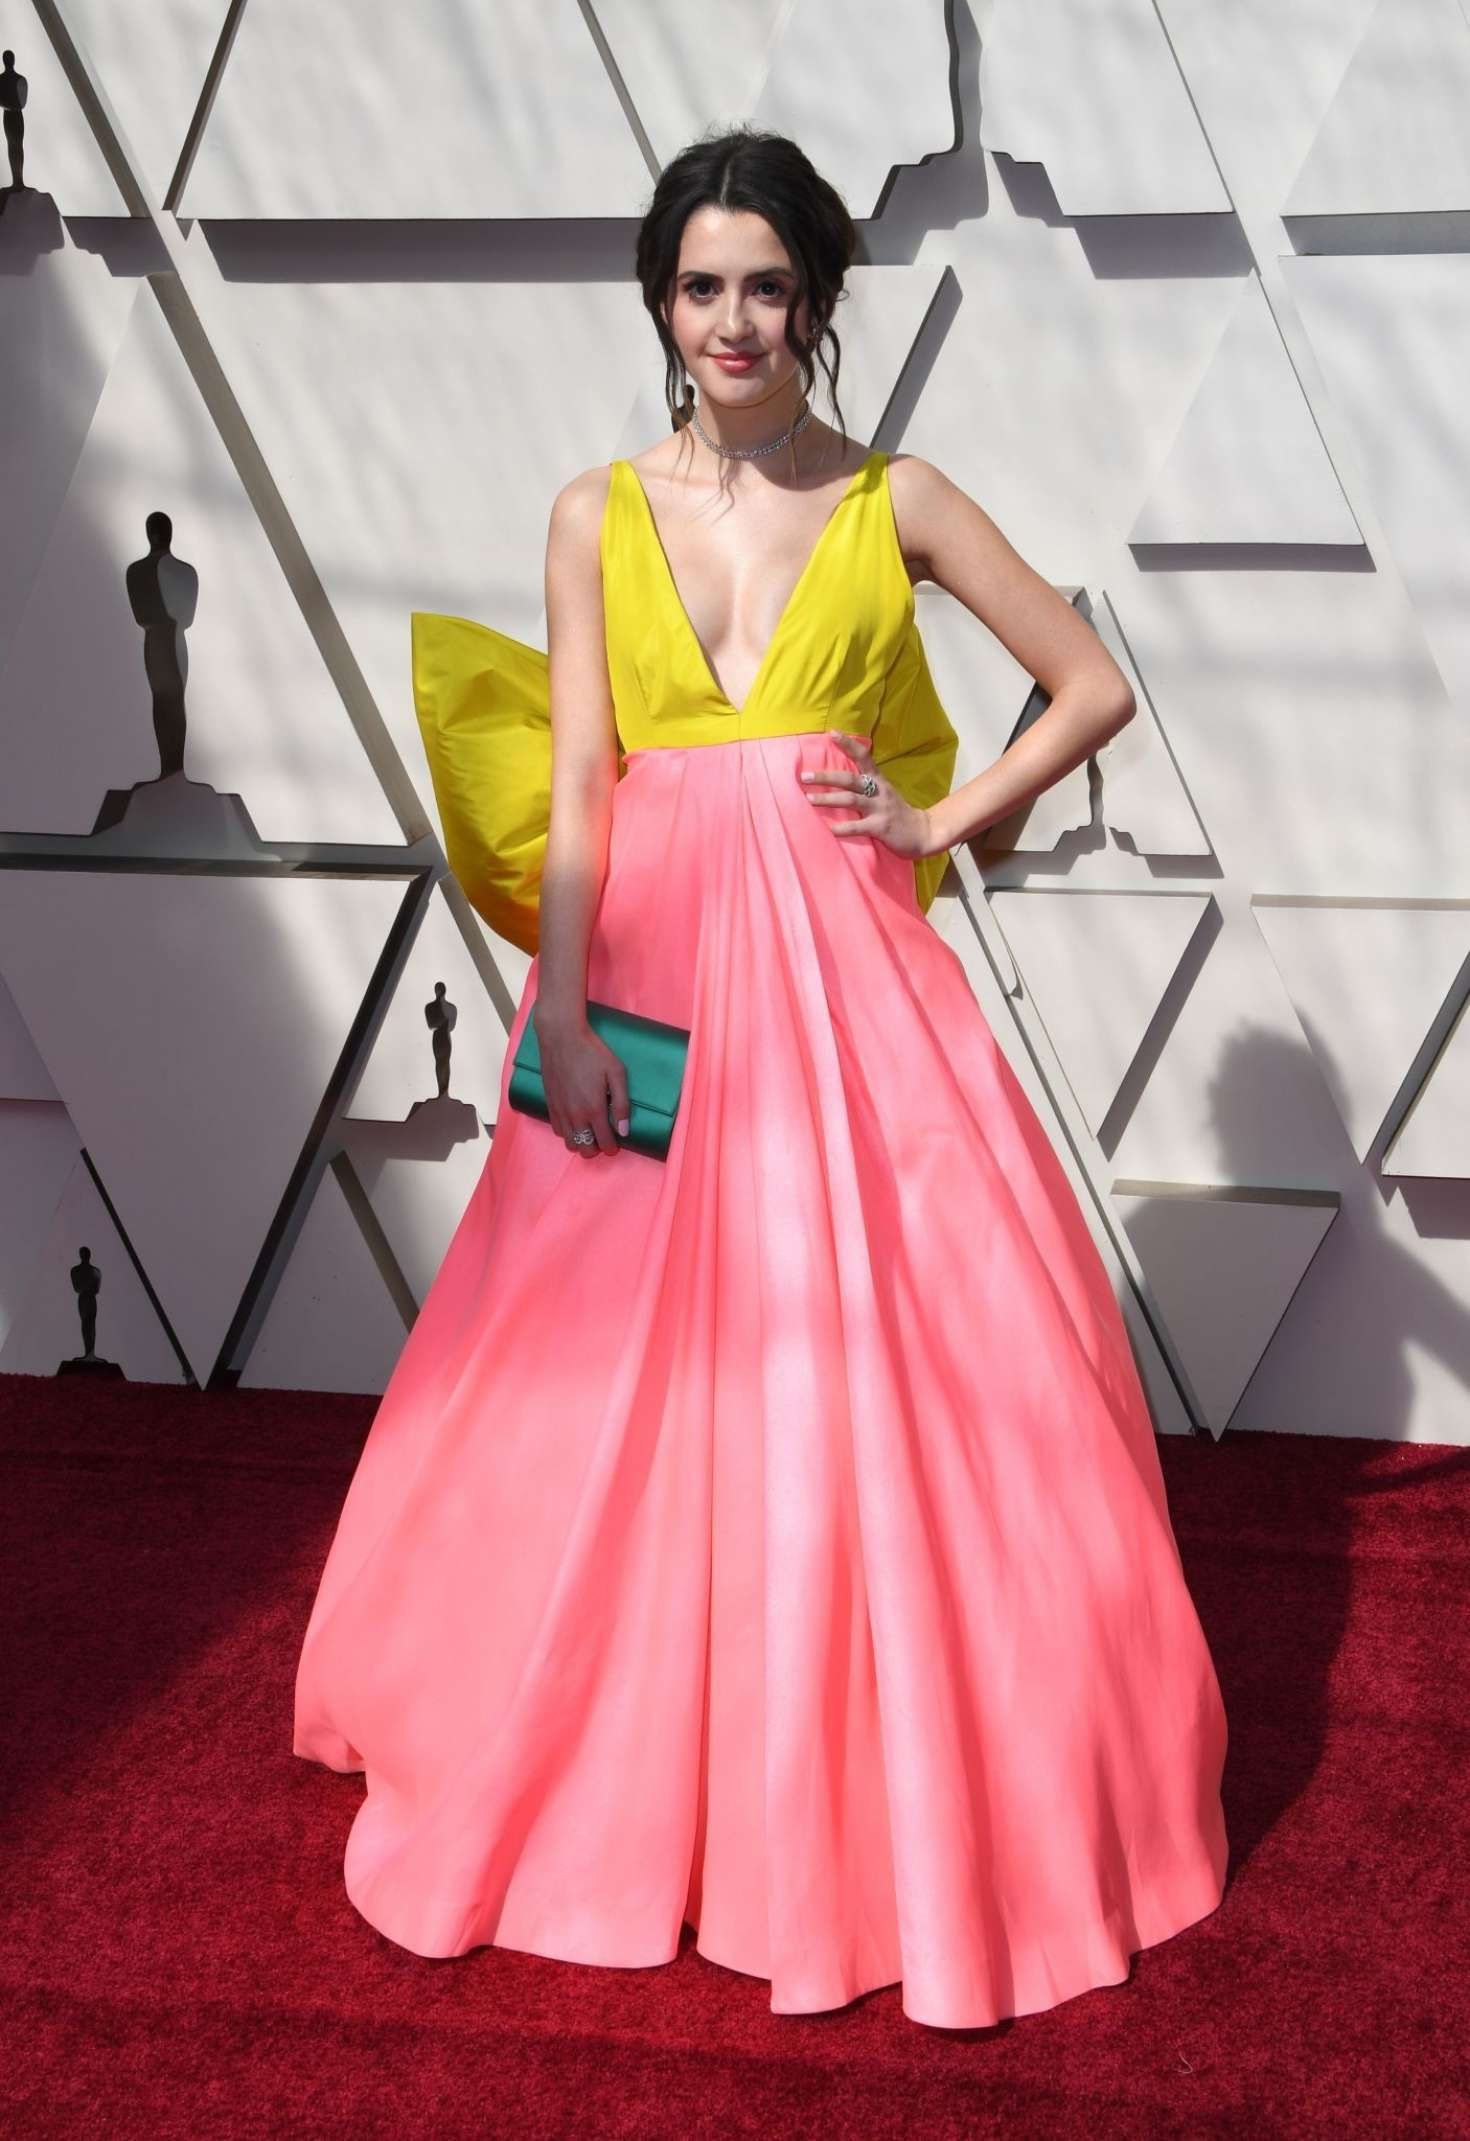 Laura Marano in new dress at the Oscars in Los Angeles, 2019